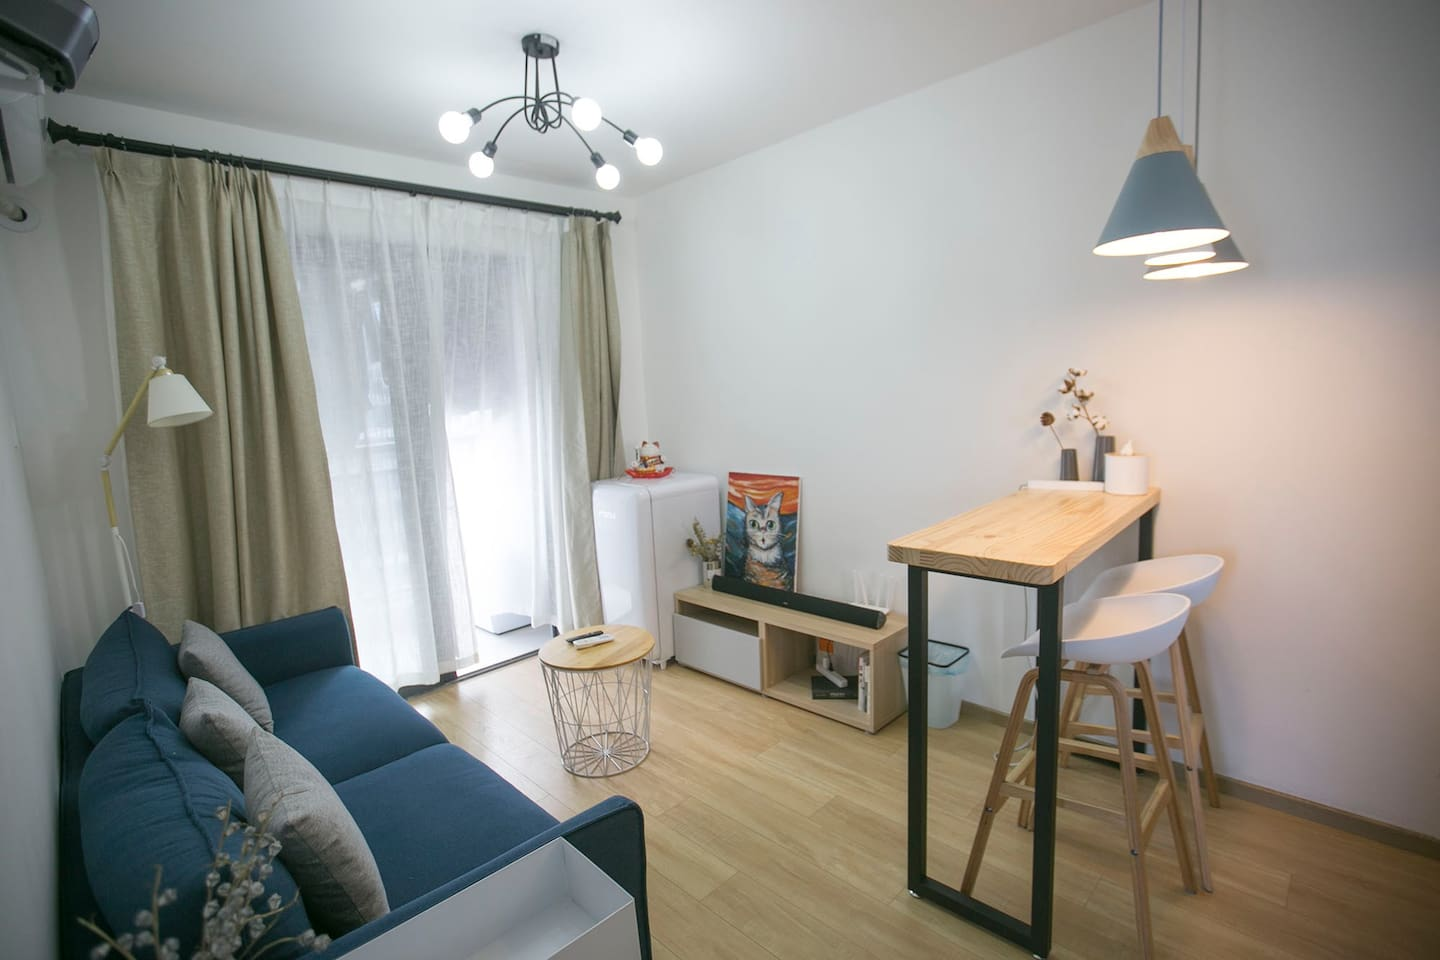 Apartment with a large projector and open kitchen. - Apartments for ...